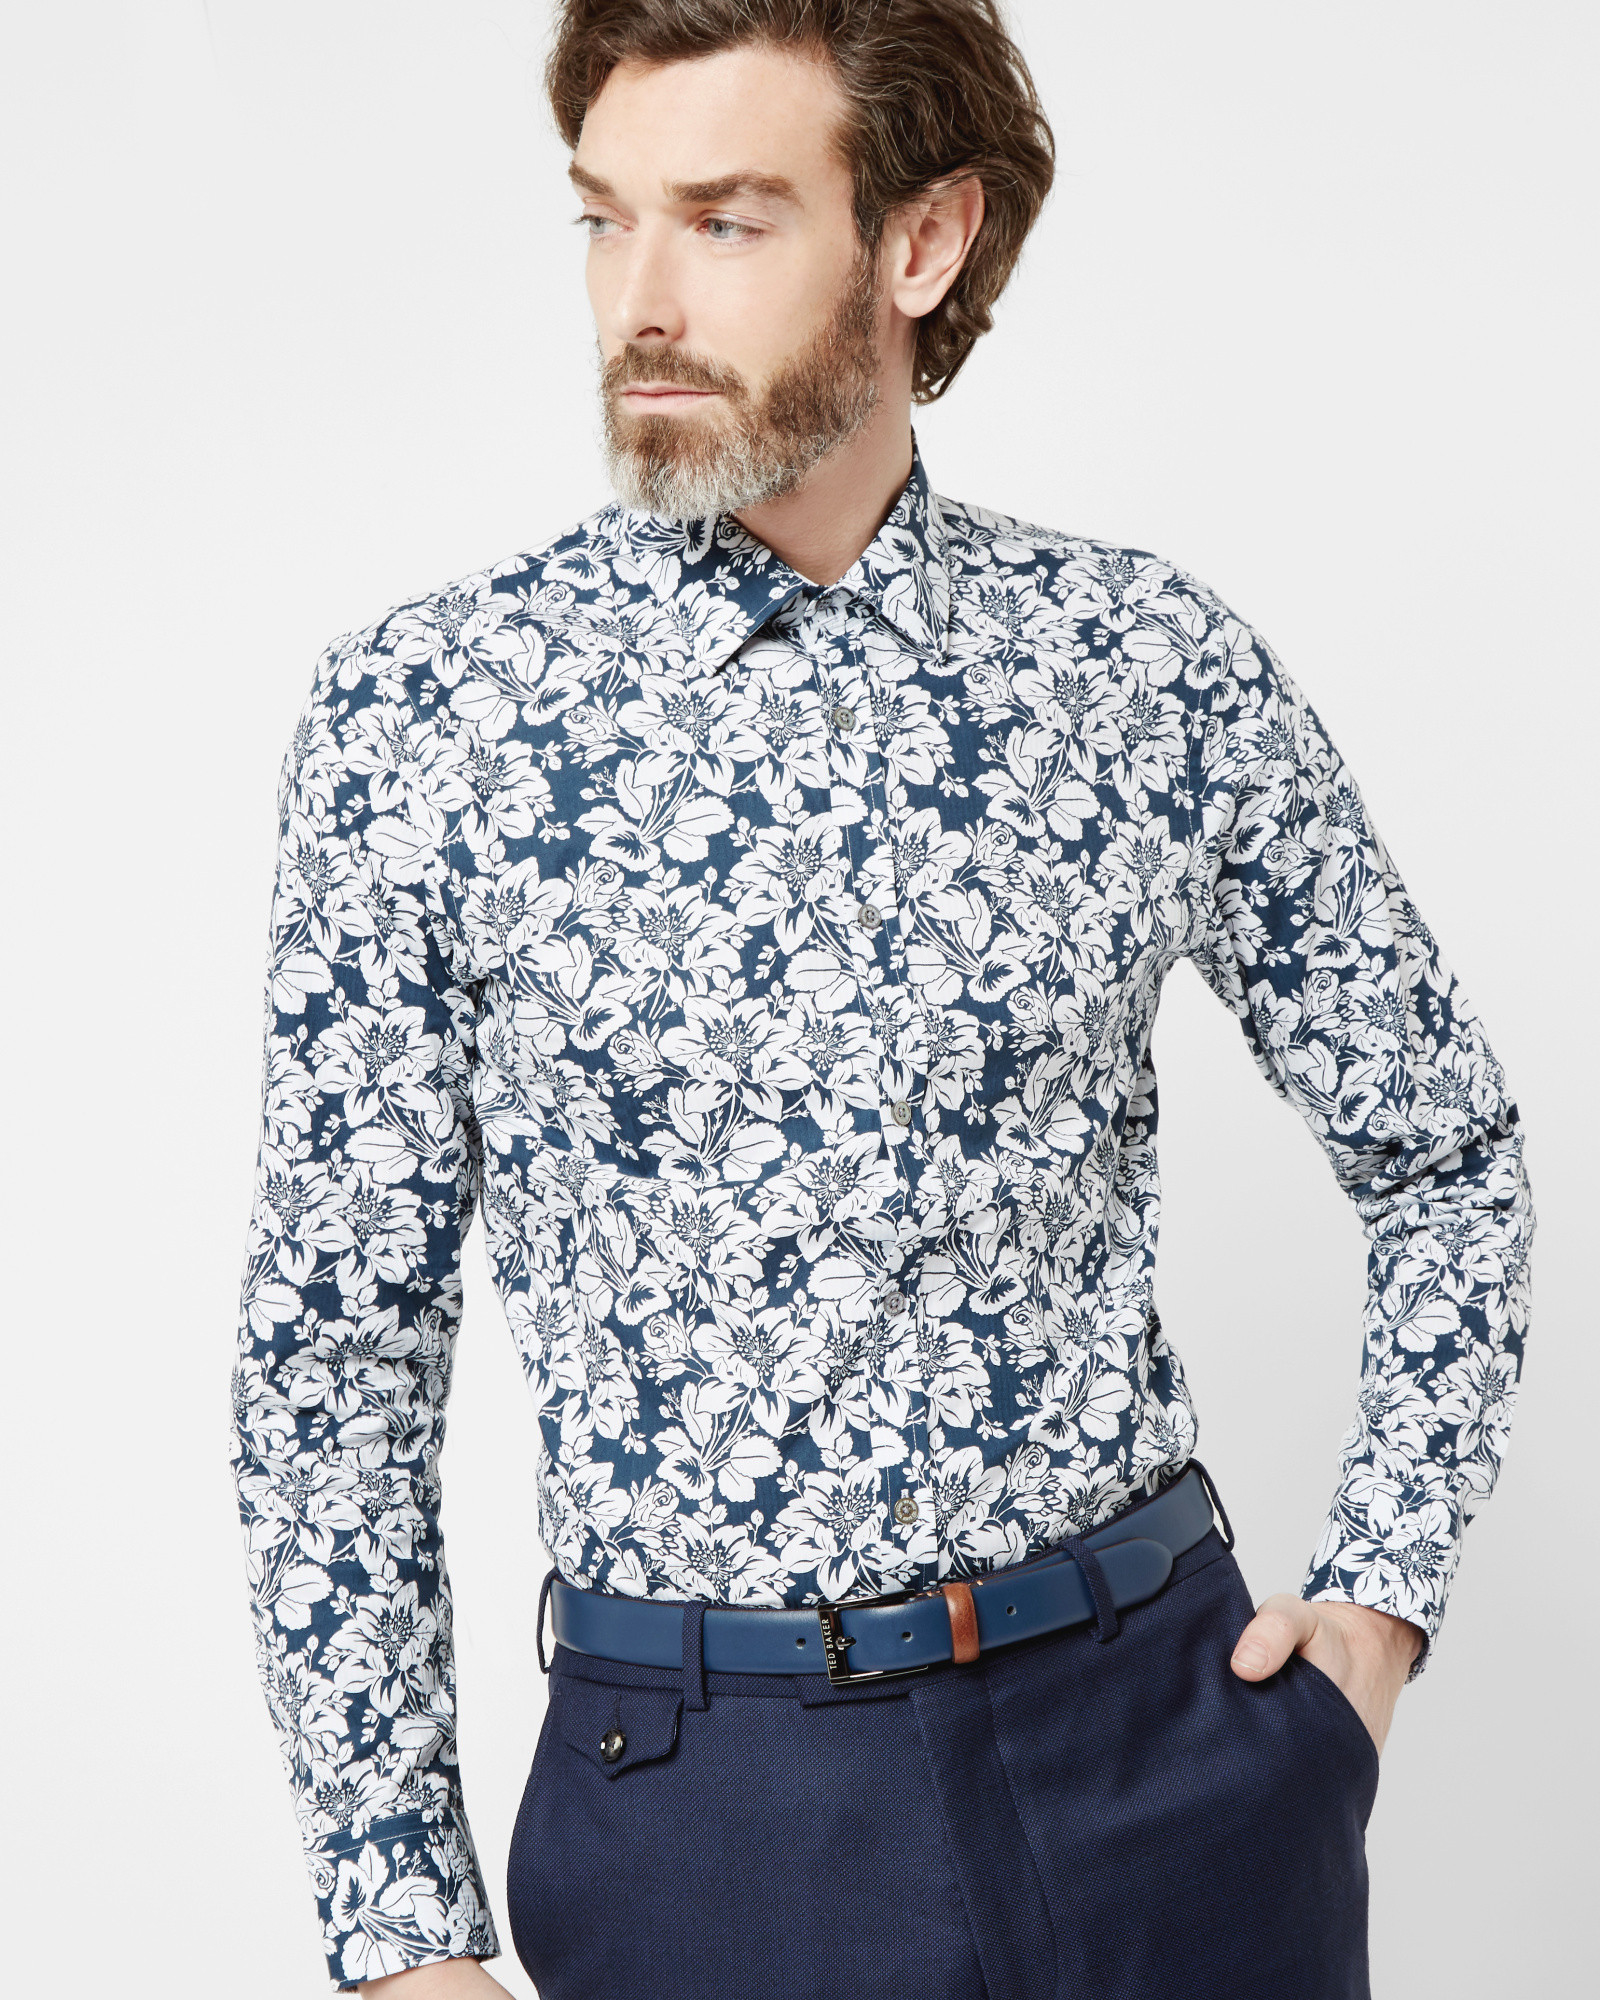 bfc13857a296f Lyst - Ted Baker Floral Print Cotton Shirt in Blue for Men